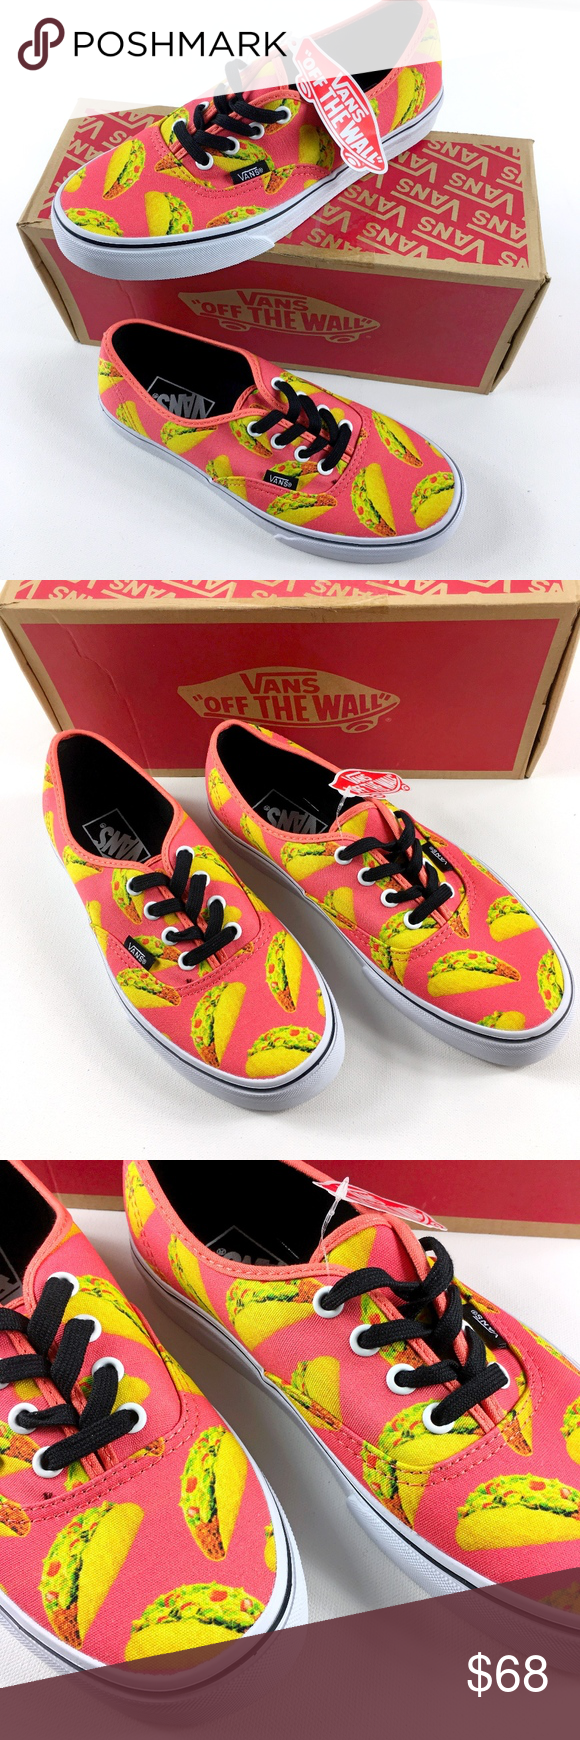 5766021a74 Spotted while shopping on Poshmark  Vans Authentic Late Night Coral Taco  RARE!  poshmark  fashion  shopping  style  Vans  Shoes